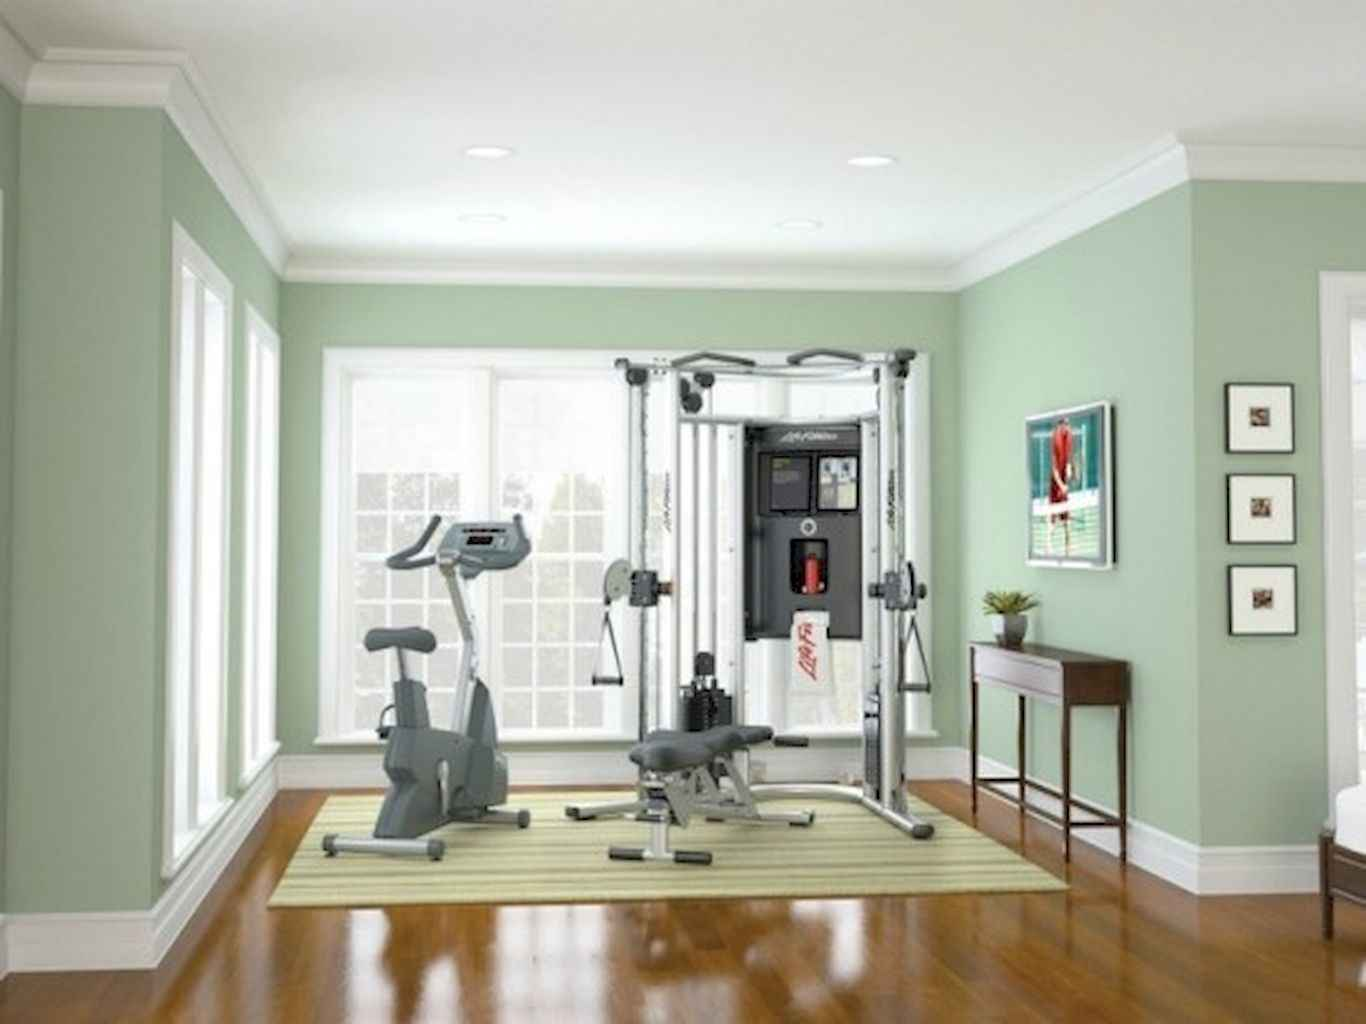 Home gym ideas small spaces livingmarch